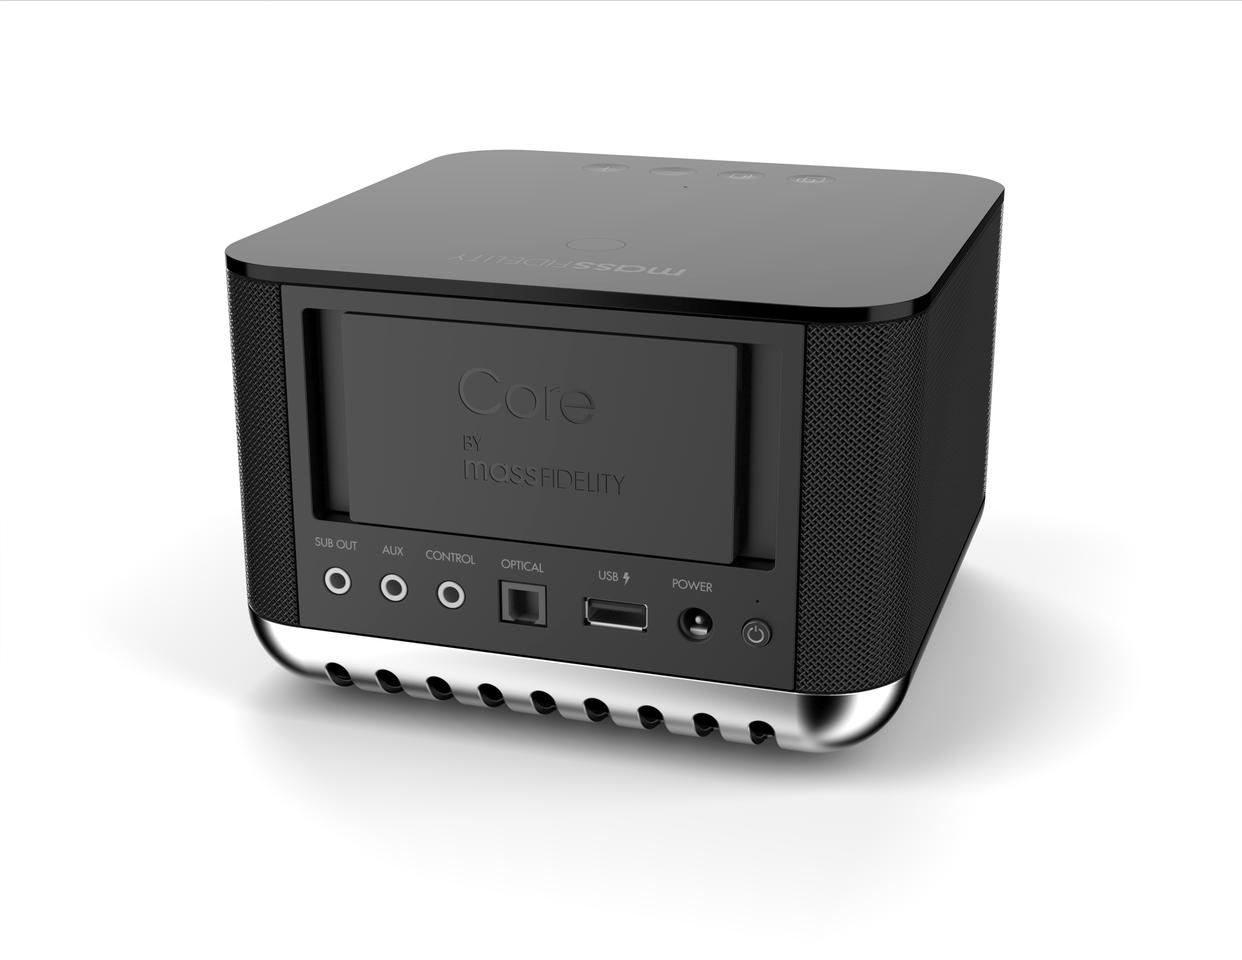 Connections to the rear include both analog and digital inputs, a USB port capable of charning mobile devices and a control jack allows for use in home automation setups